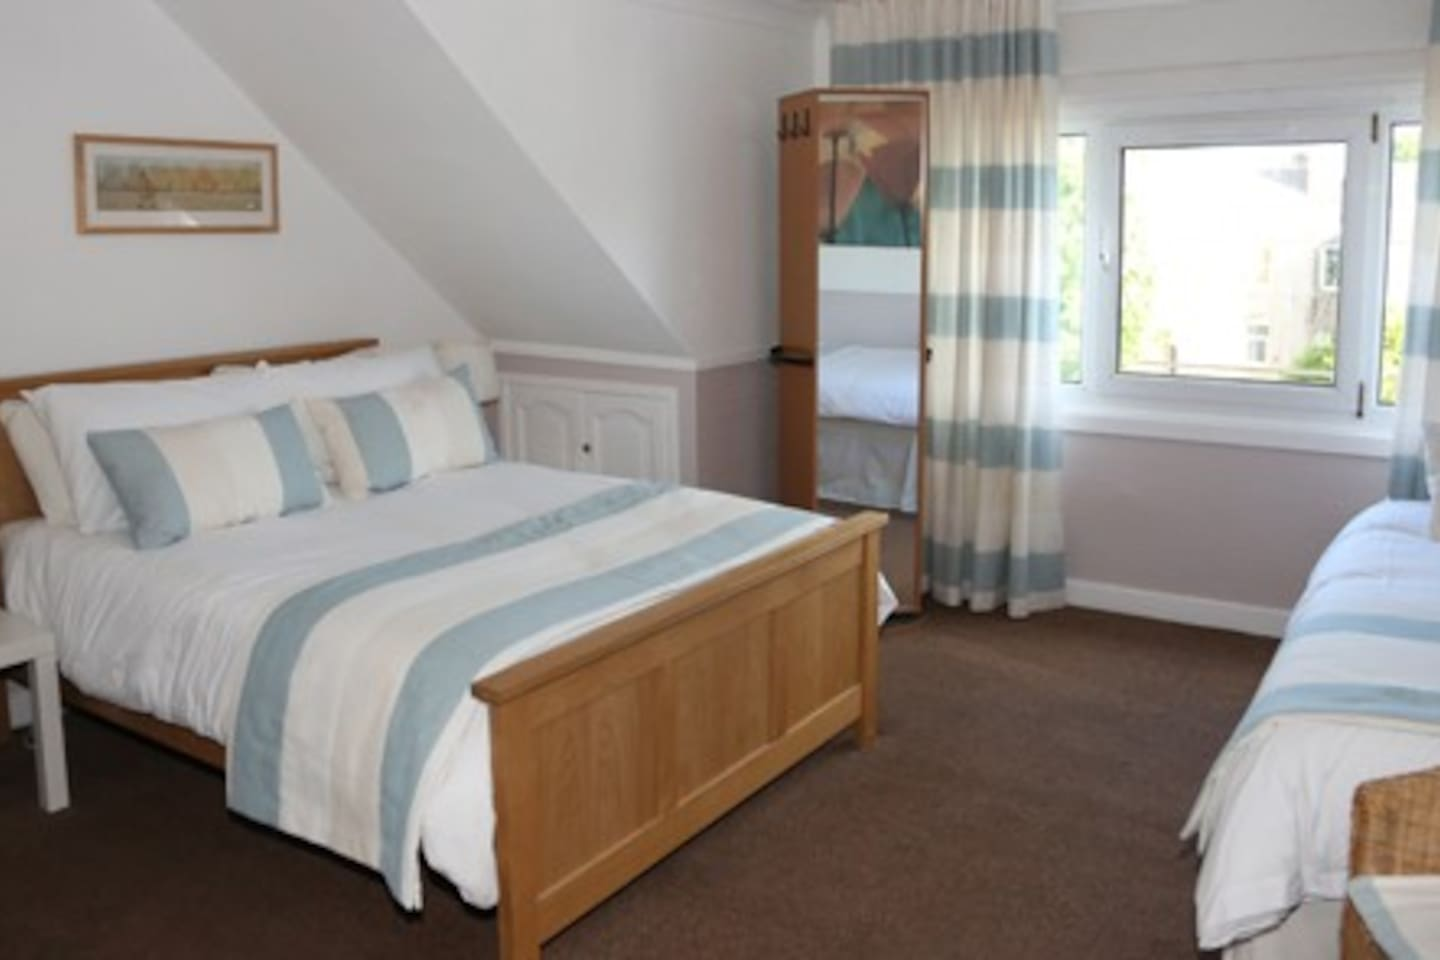 Room 1 - 1 Double, 2 Singles Beds and ensuite Shower room